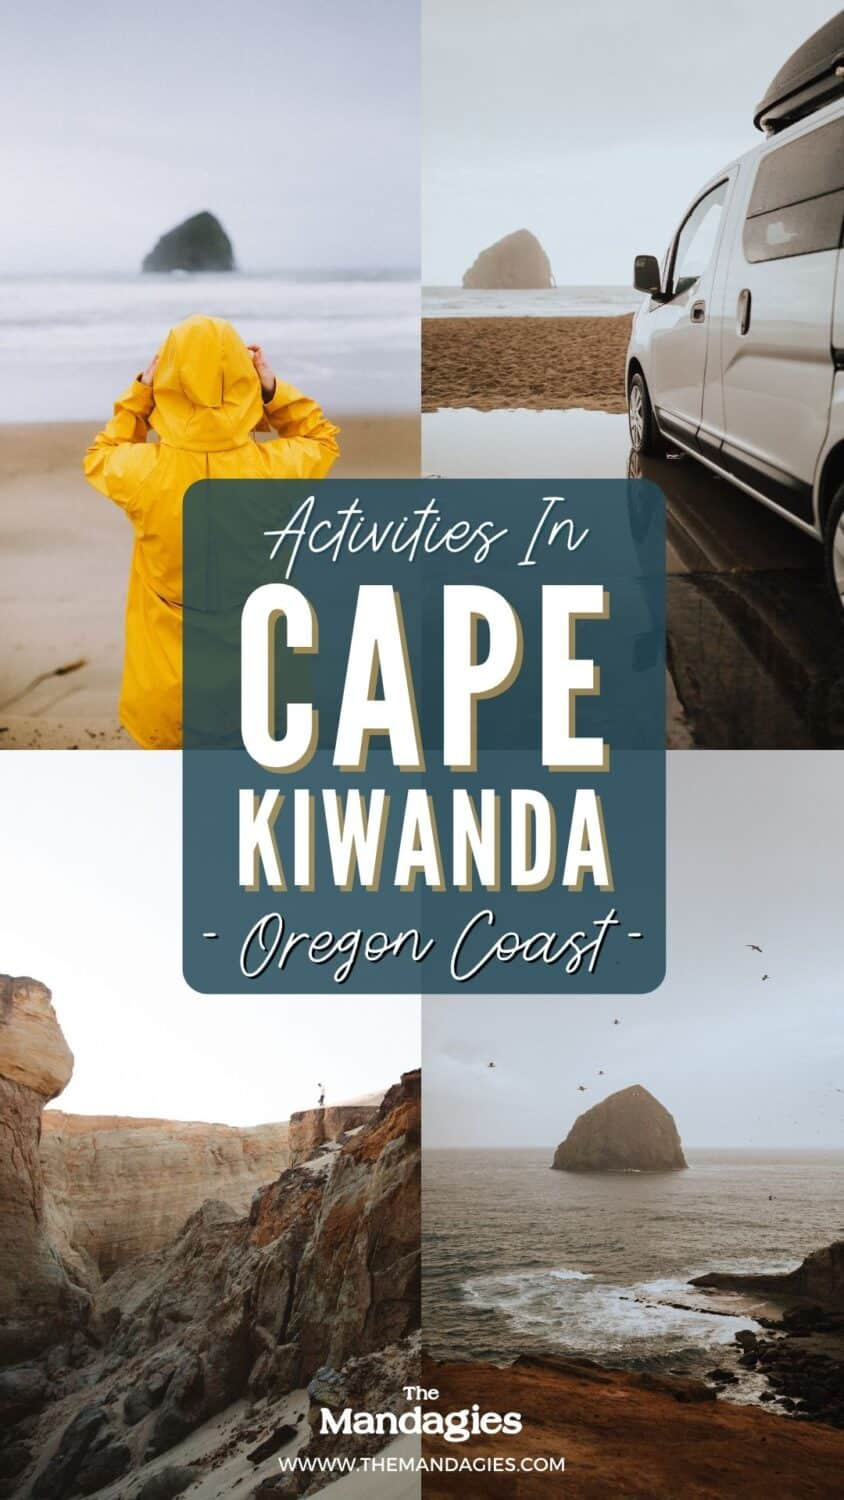 Looking for things to do in Cape Kiwanda? This epic Oregon Coast gem in Pacific City provides so many cool things to do in the Pacific Northwest! Save this post for Cape Kiwanda State Natural Area, the Inn at Cape Kiwanda, Bob Straub State Park, Three Capes Scenic Route and more!  #oregon #oregoncoast #capekiwanda #pacificcity #pacificnorthwest #PNW #Westcoast #outdoors #nature #adventures #photography